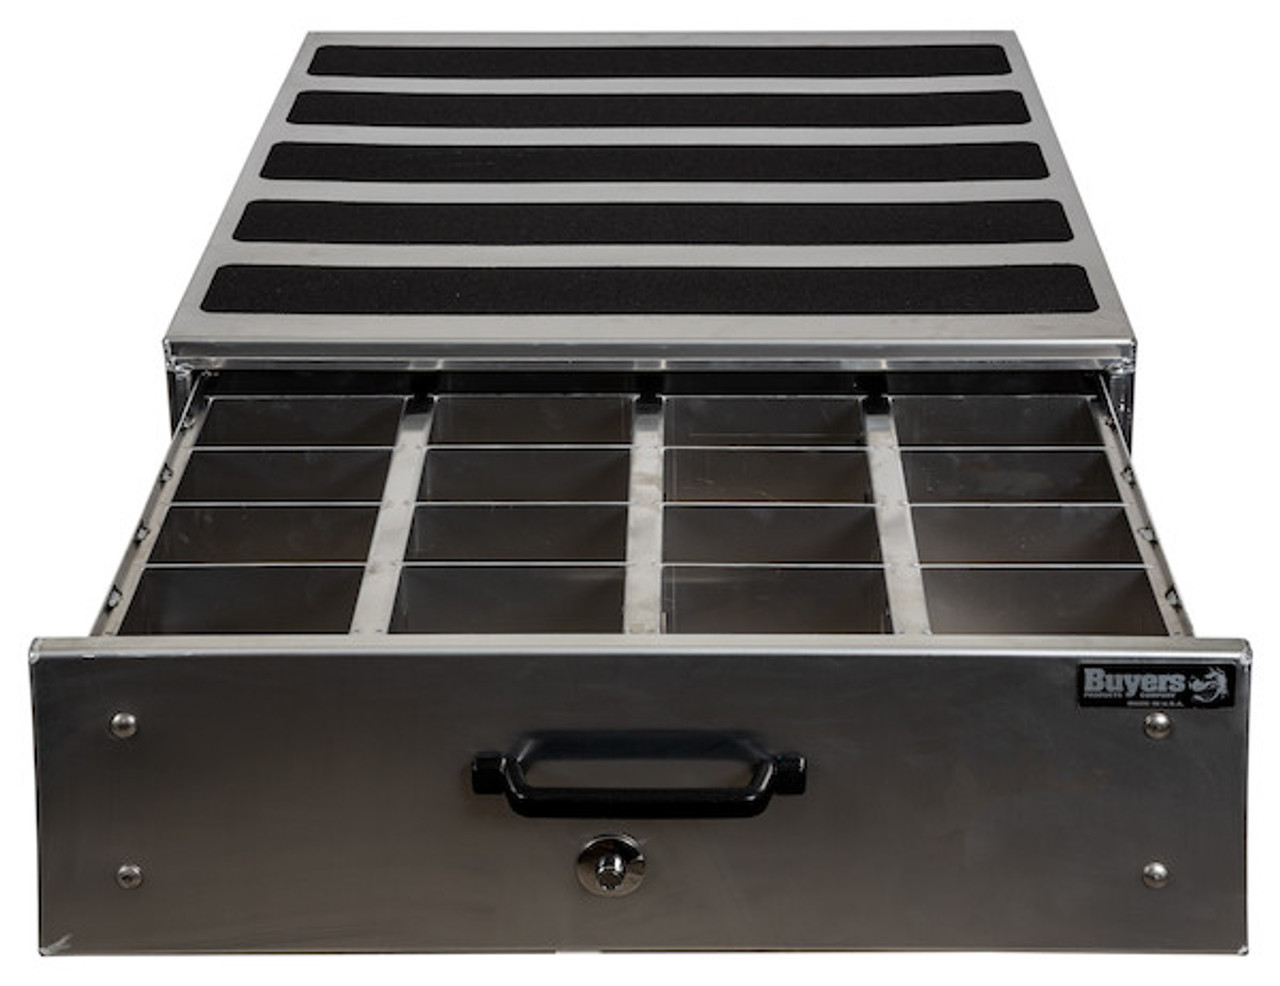 1718030 BUYERS SMOOTH ALUMINUM SLIDE OUT TRUCK BED TOOLBOX